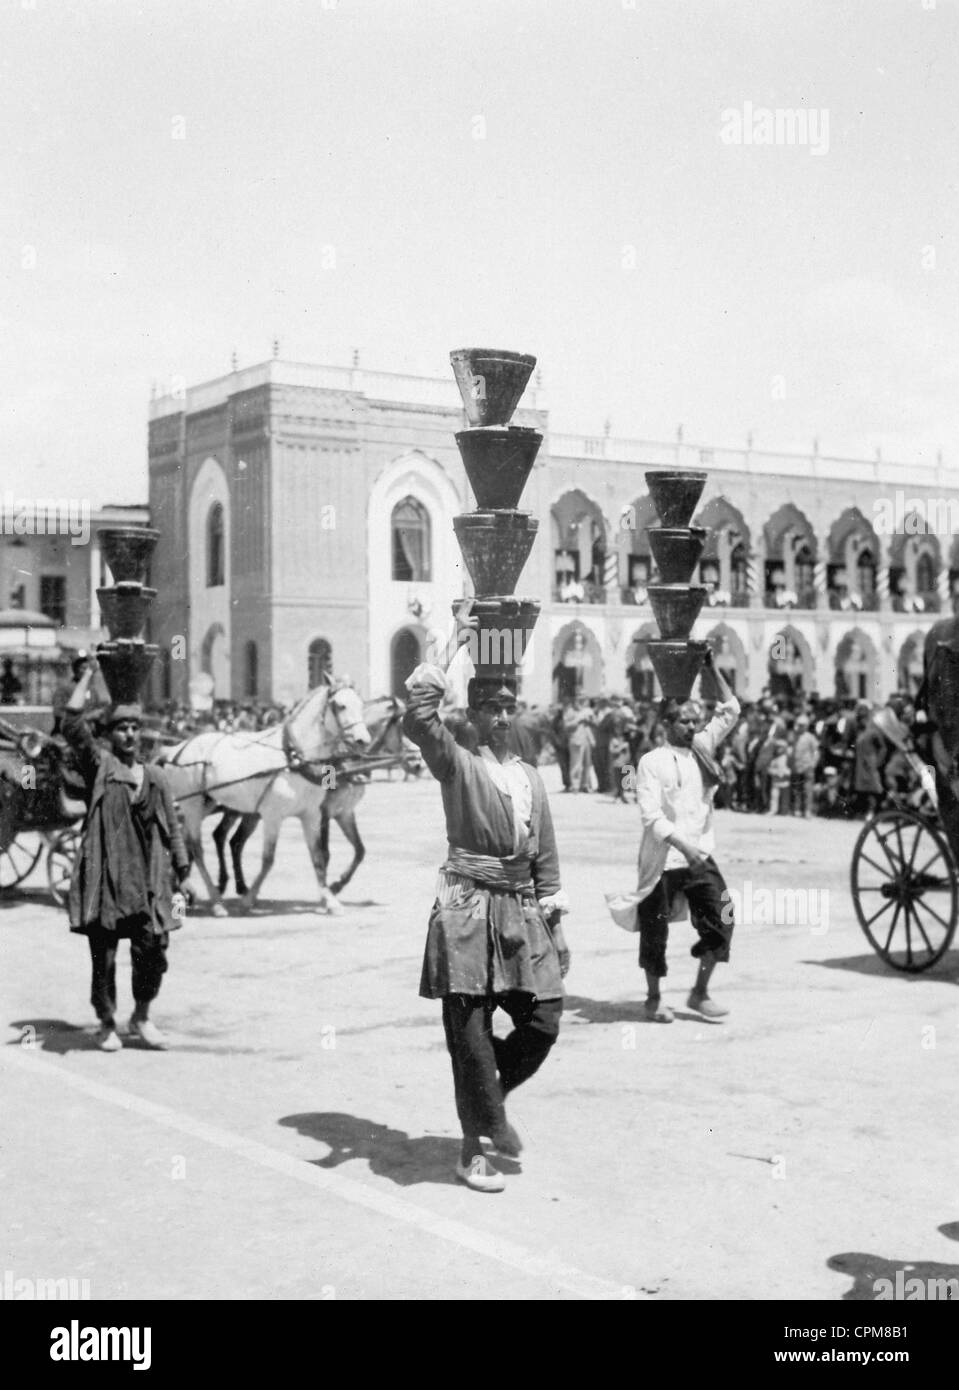 Porters in Persia, 1935 - Stock Image